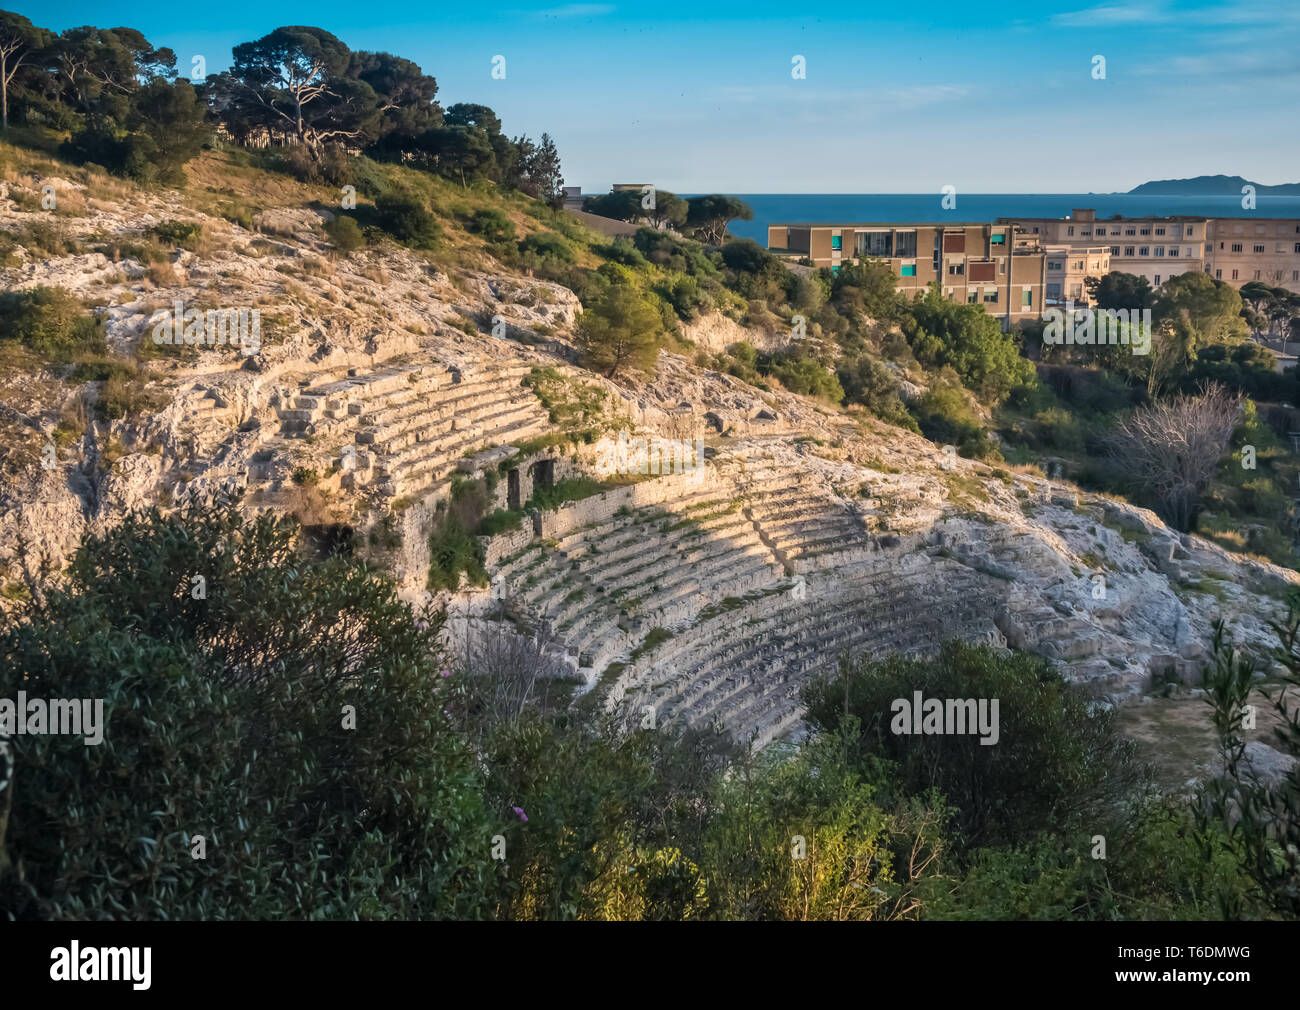 The Roman Amphitheatre of Cagliari, Sardinia, Italy. Built in the 2nd century AD, half carved in the rock of a hill. - Stock Image